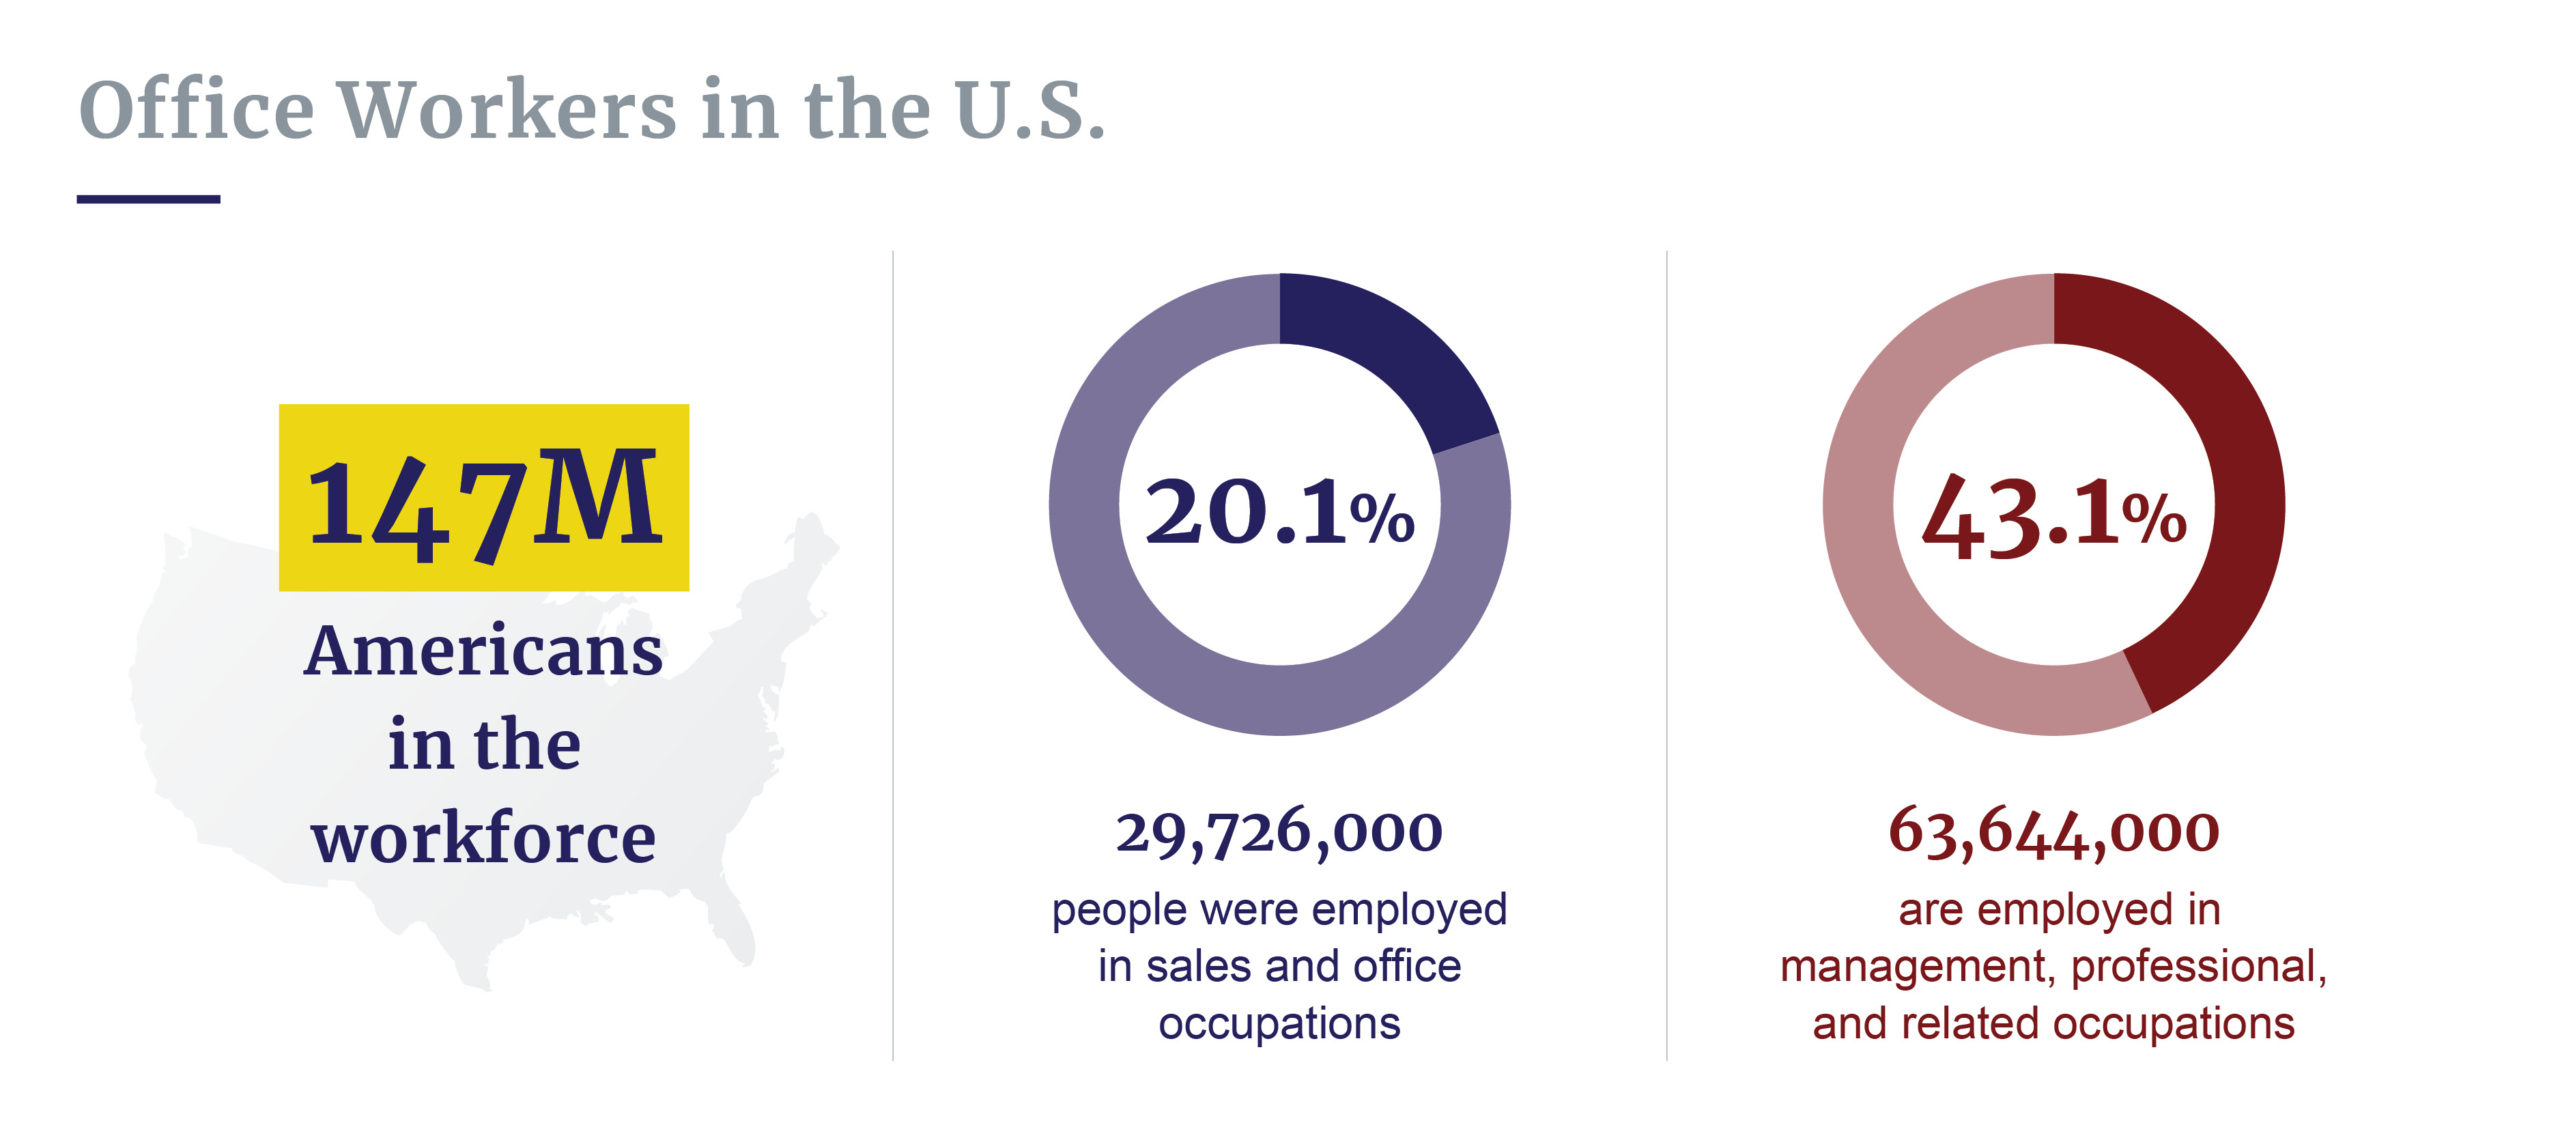 Office workers in the U.S.